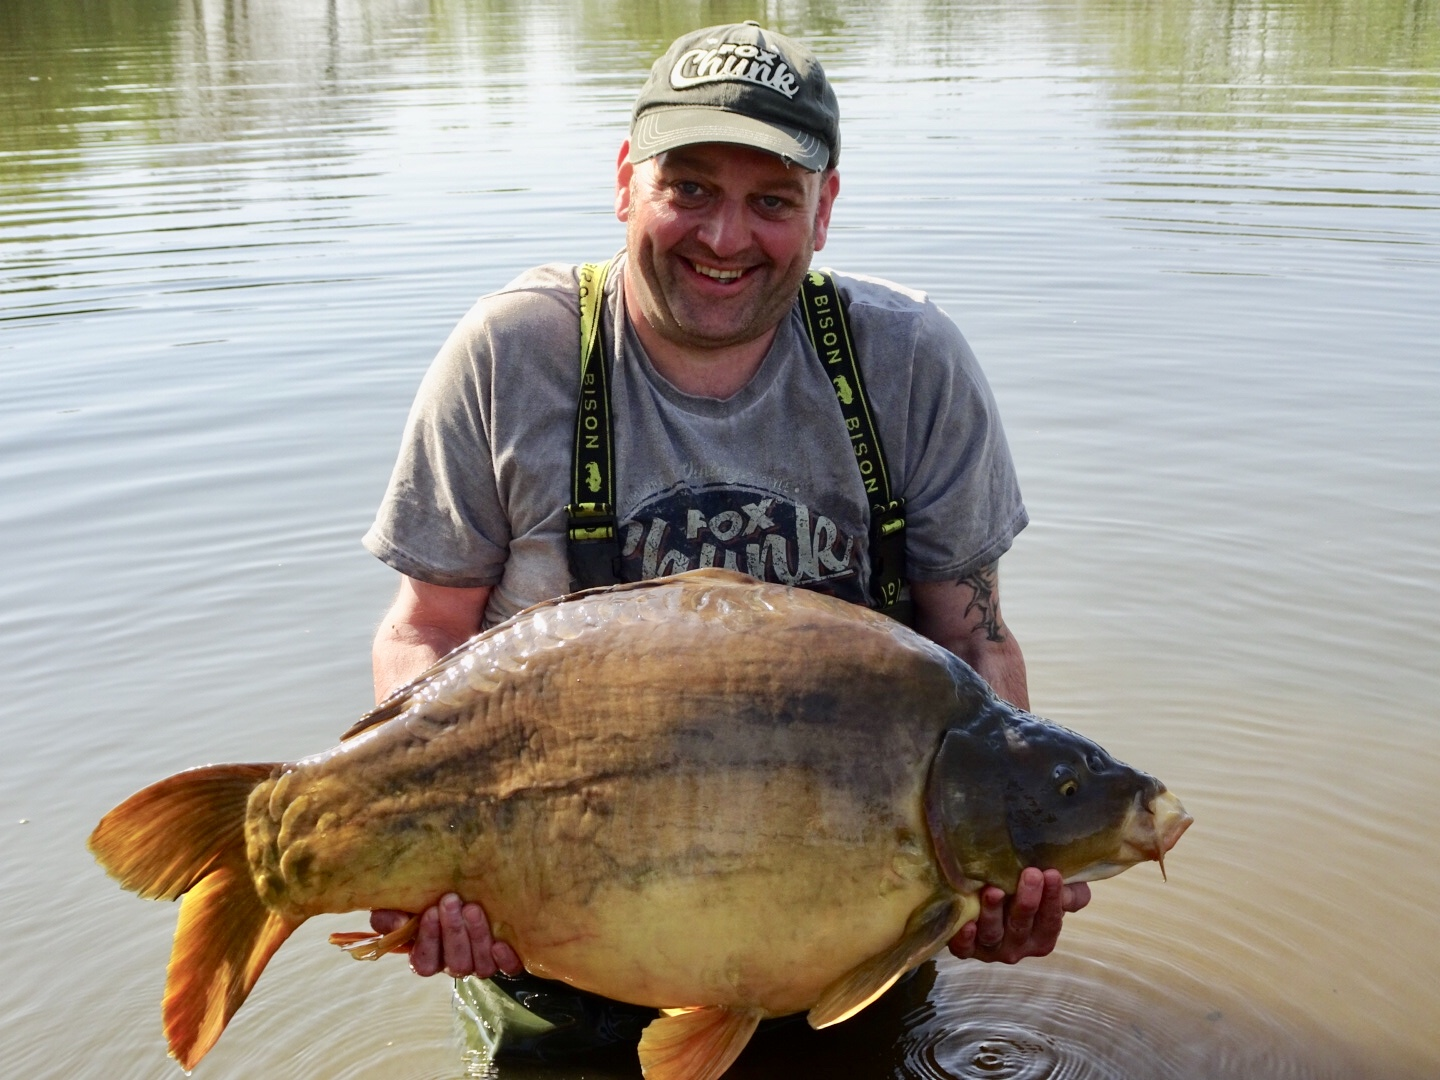 The smaller of the pair at 44lb 8oz